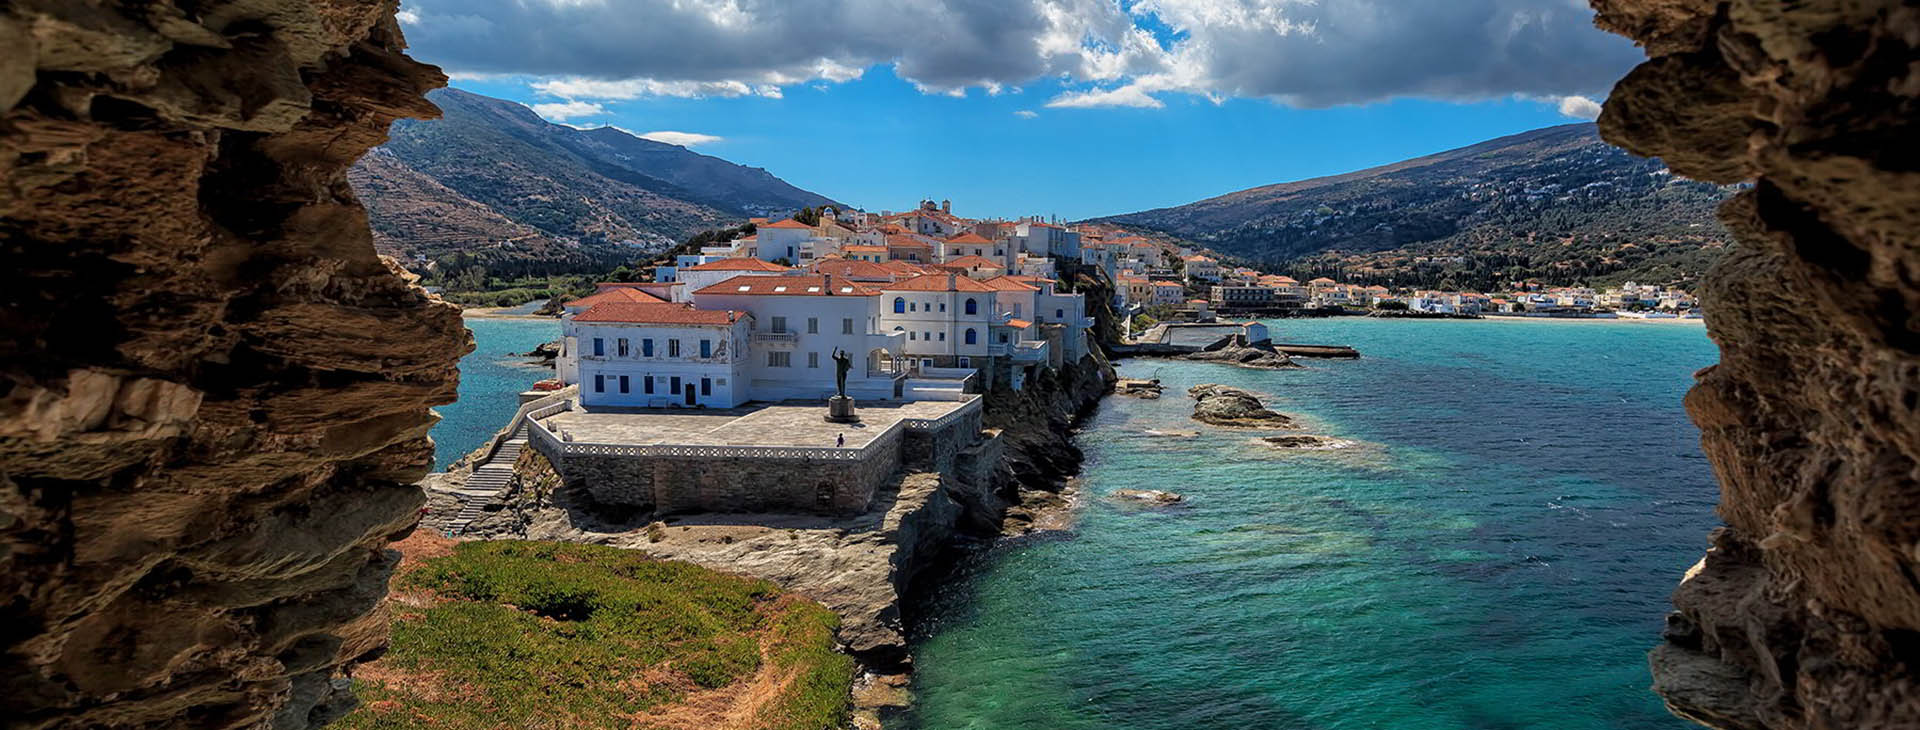 Chora (capital town), Andros island